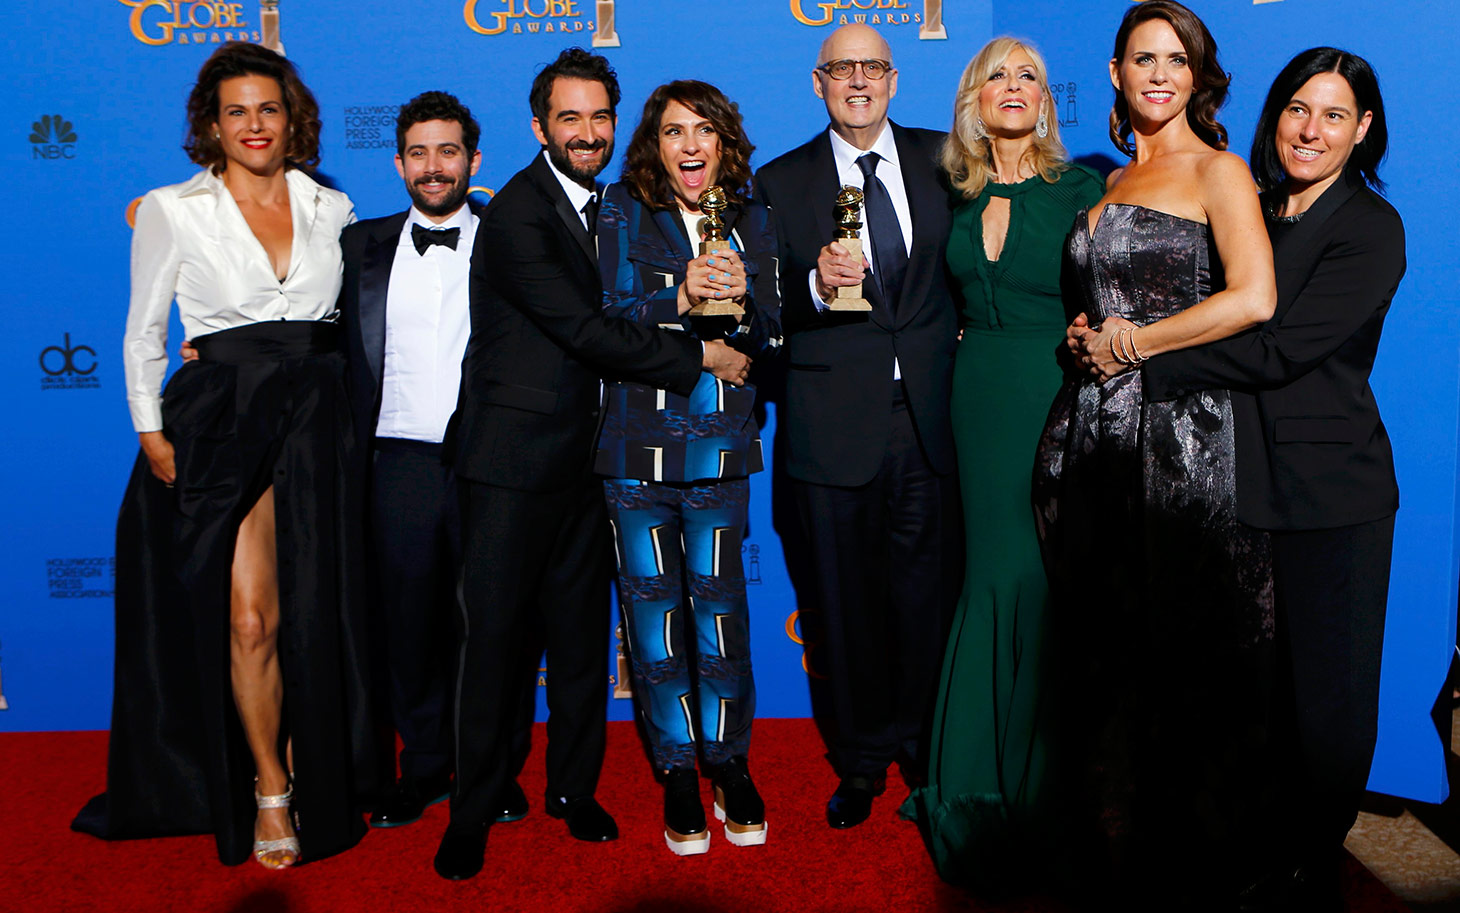 """The cast of """"Transparent"""" poses with their award at the 72nd Golden Globe Awards in Beverly Hills"""